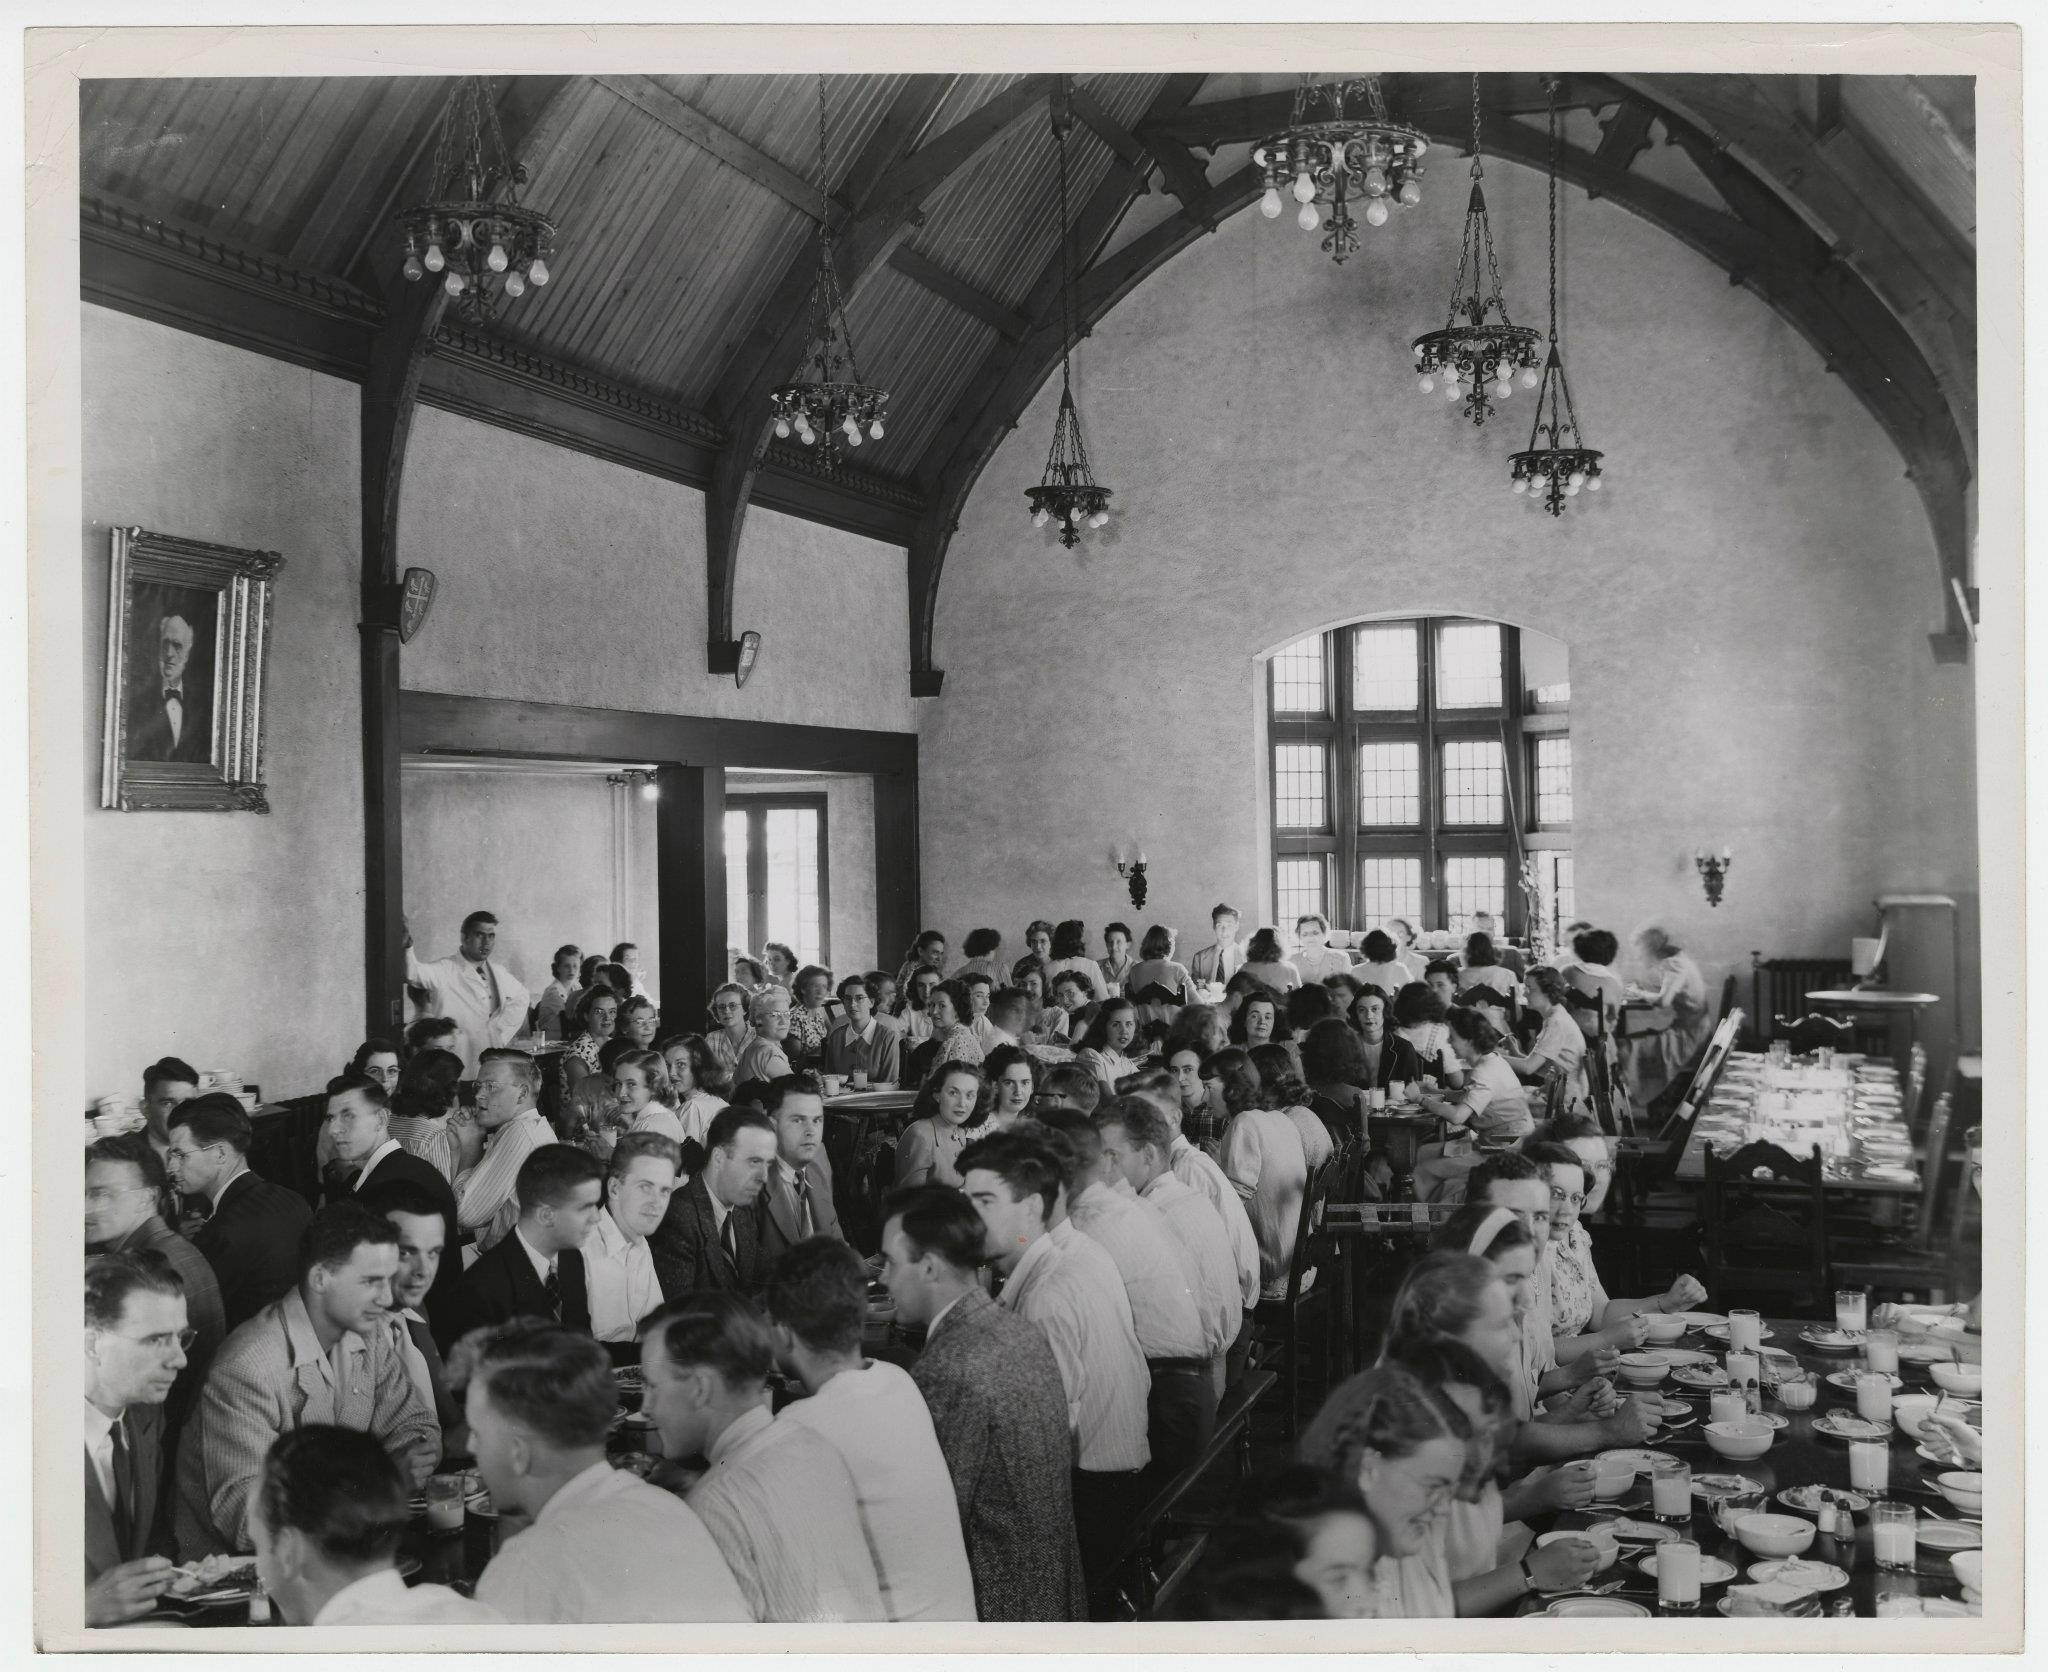 We often get asked what used to be in The Refectory before it became The Phoenix. The space has been used as a lecture hall and an exam room but the space was originally used as the dining hall for the folks living in Edwards and Wallingford residences.